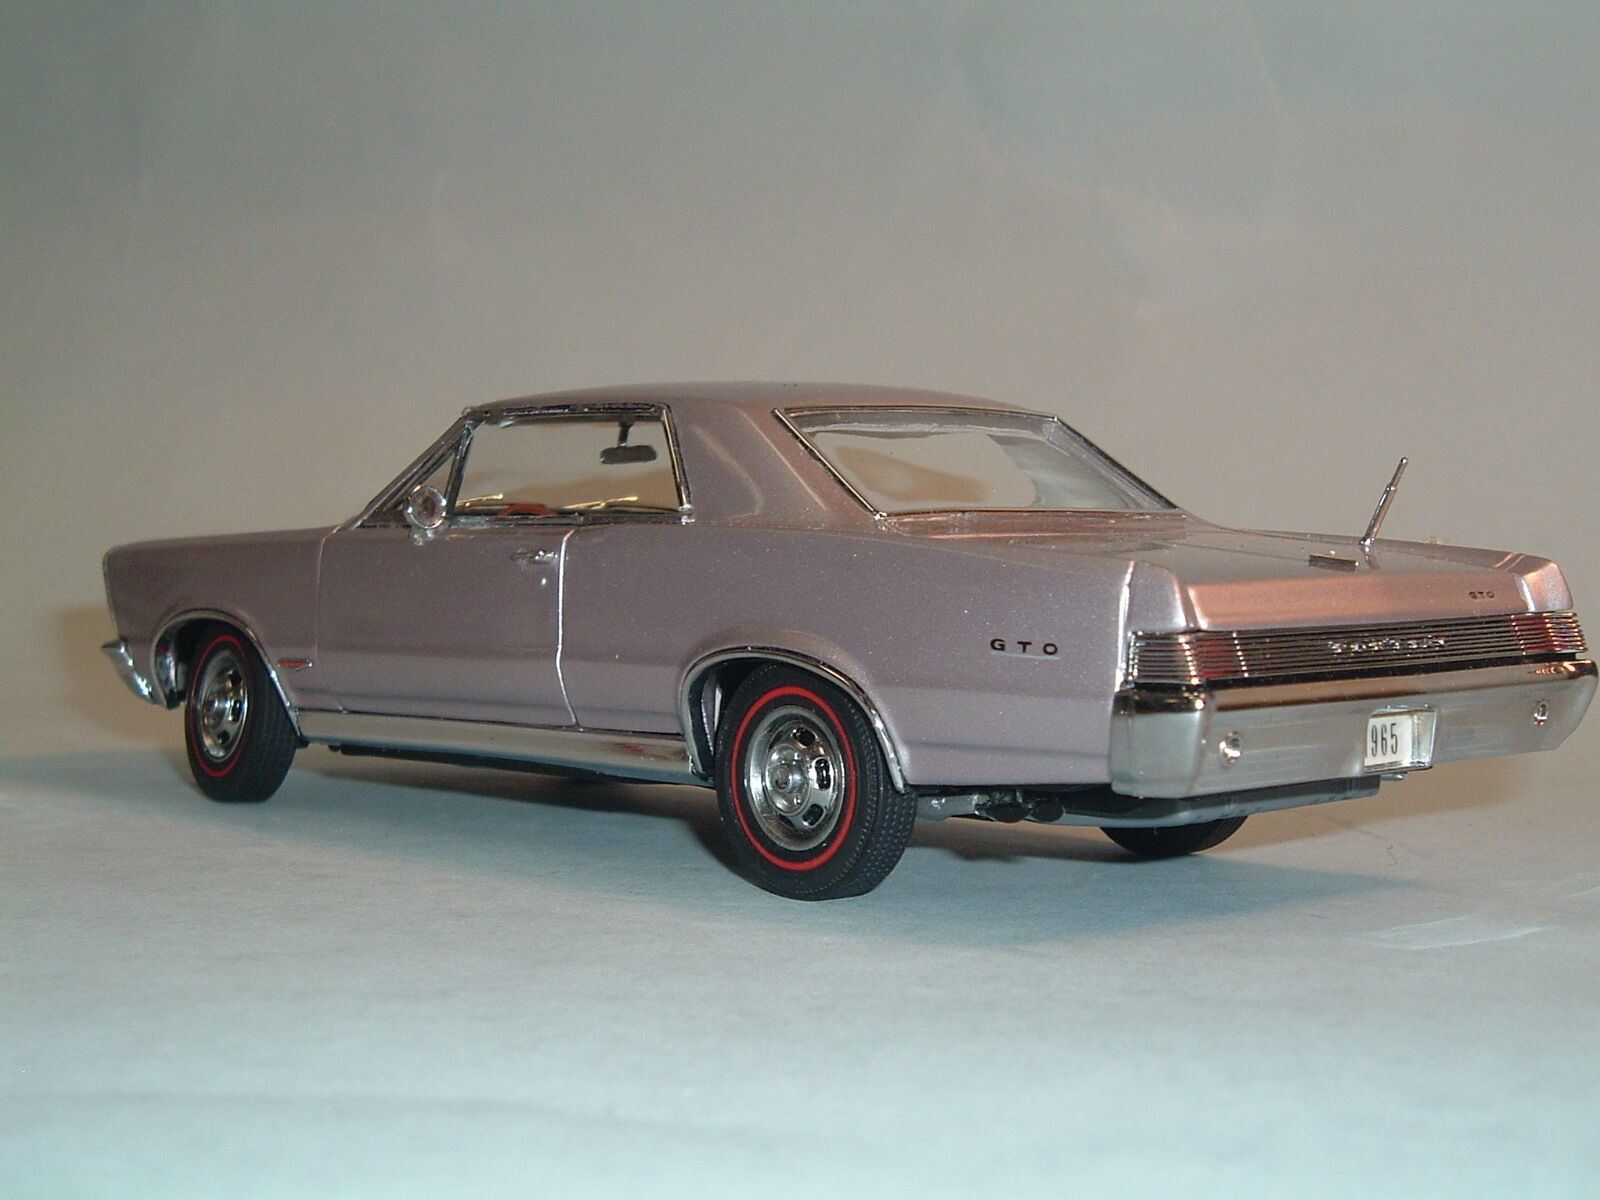 1965 PONTIAC GTO IRIS MIST COUPE WITH BOX DANBURY MINT 1 24 DIECAST